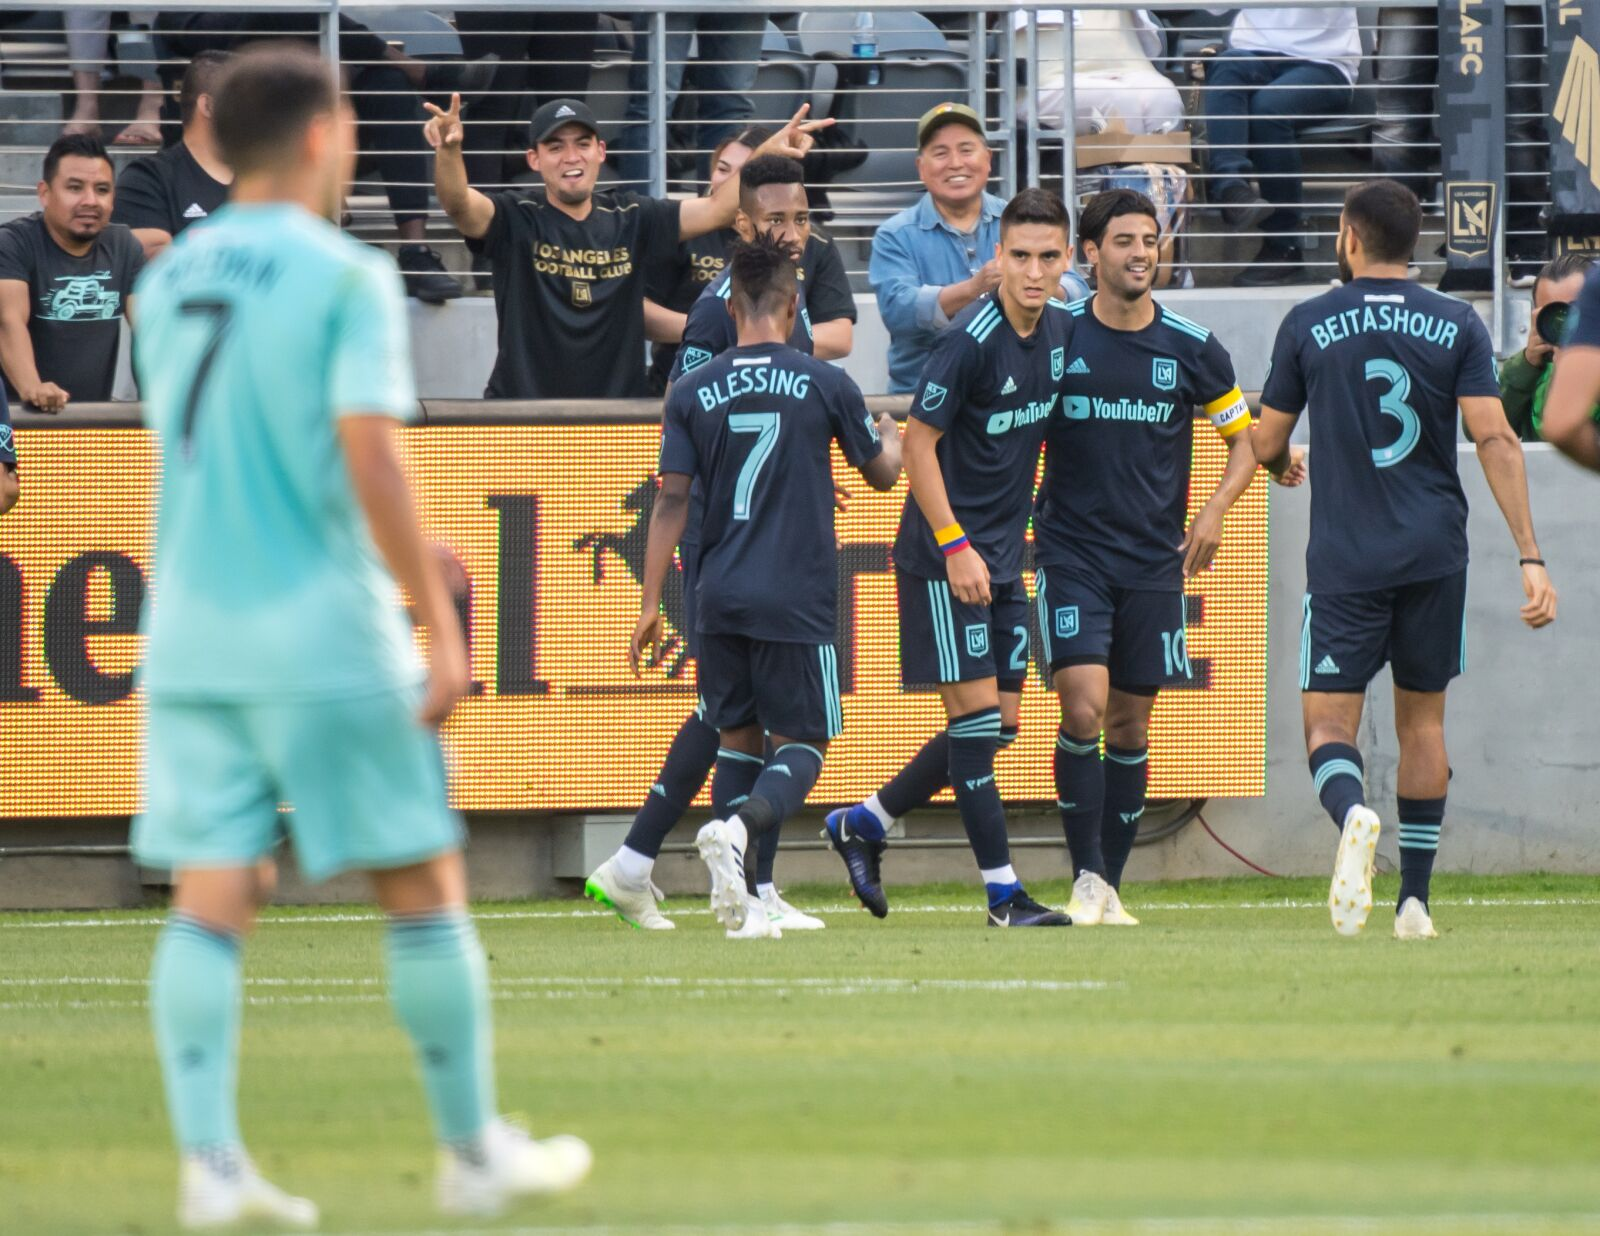 Los Angeles FC assert their dominance in the MLS